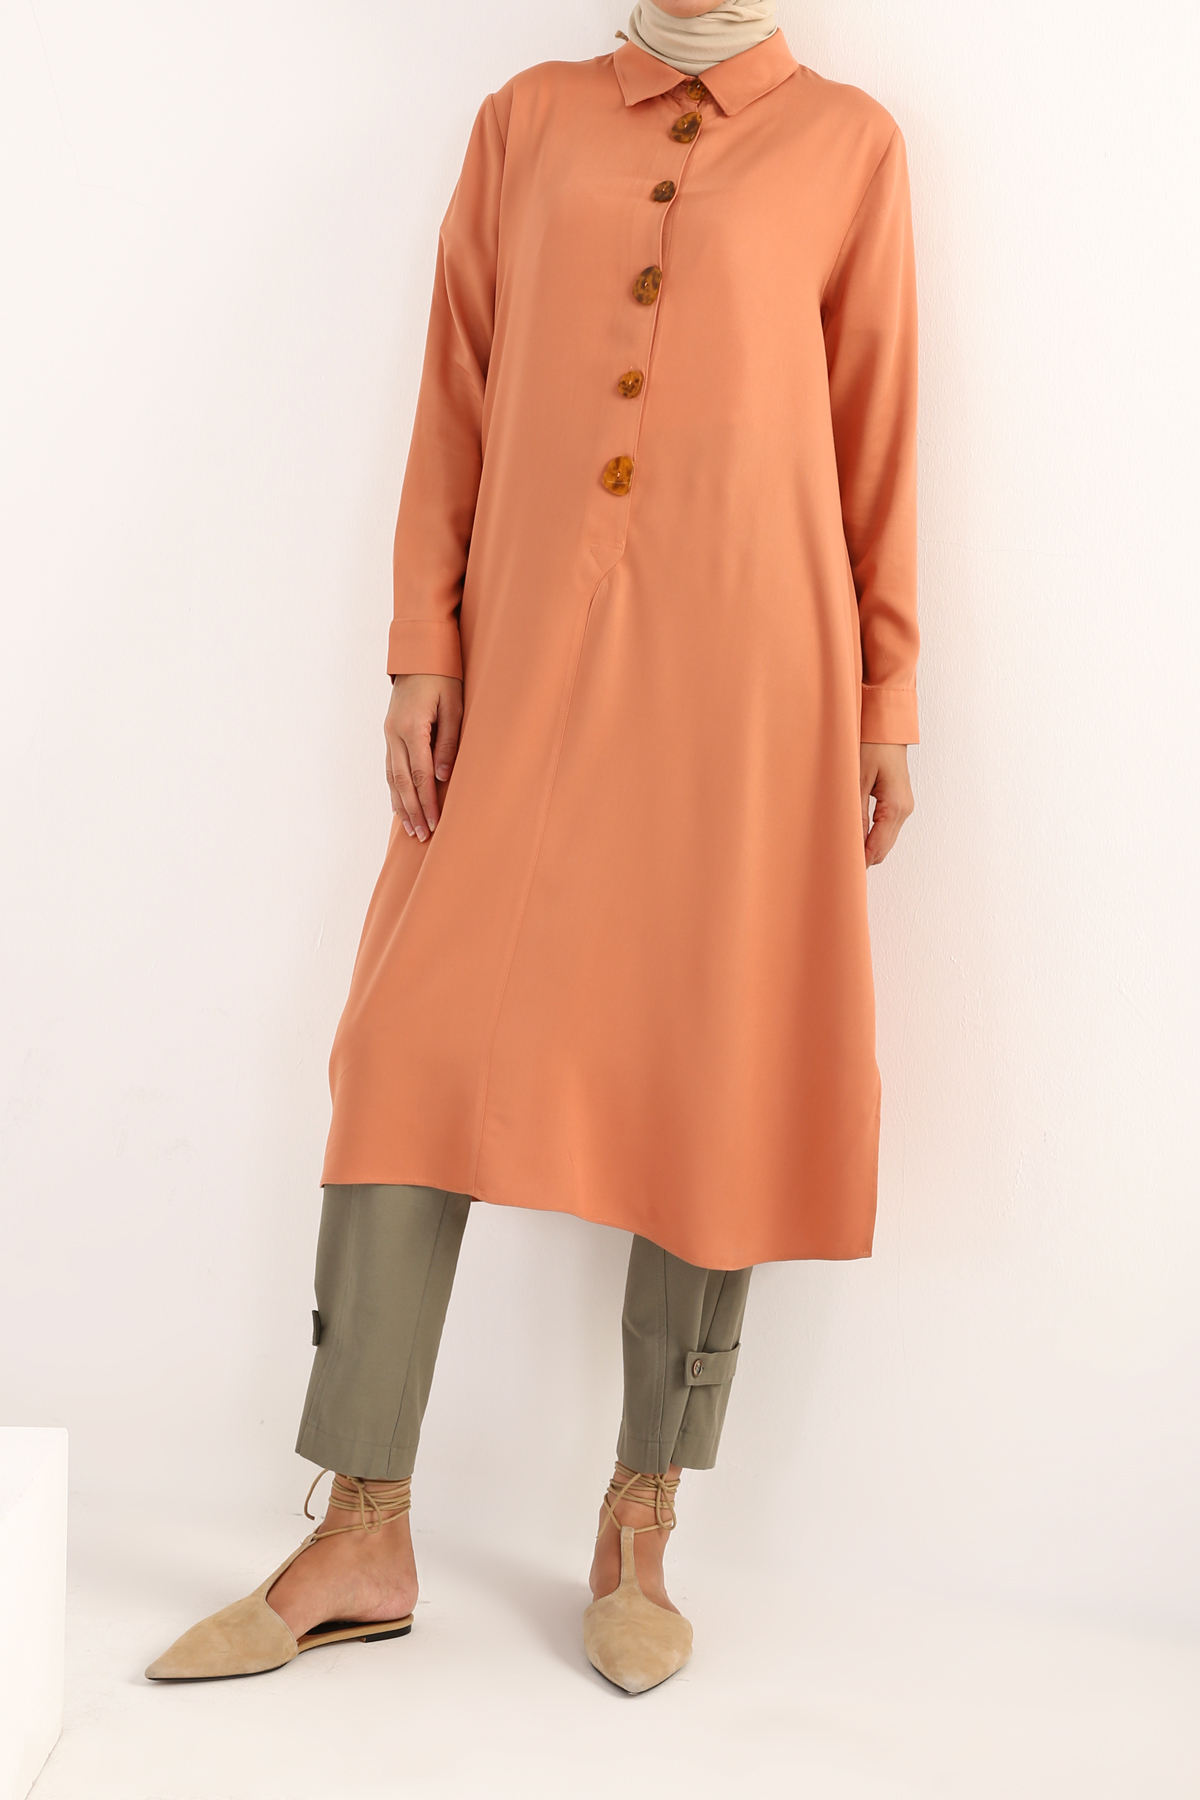 Natural Fabric Button Detailed Tunic